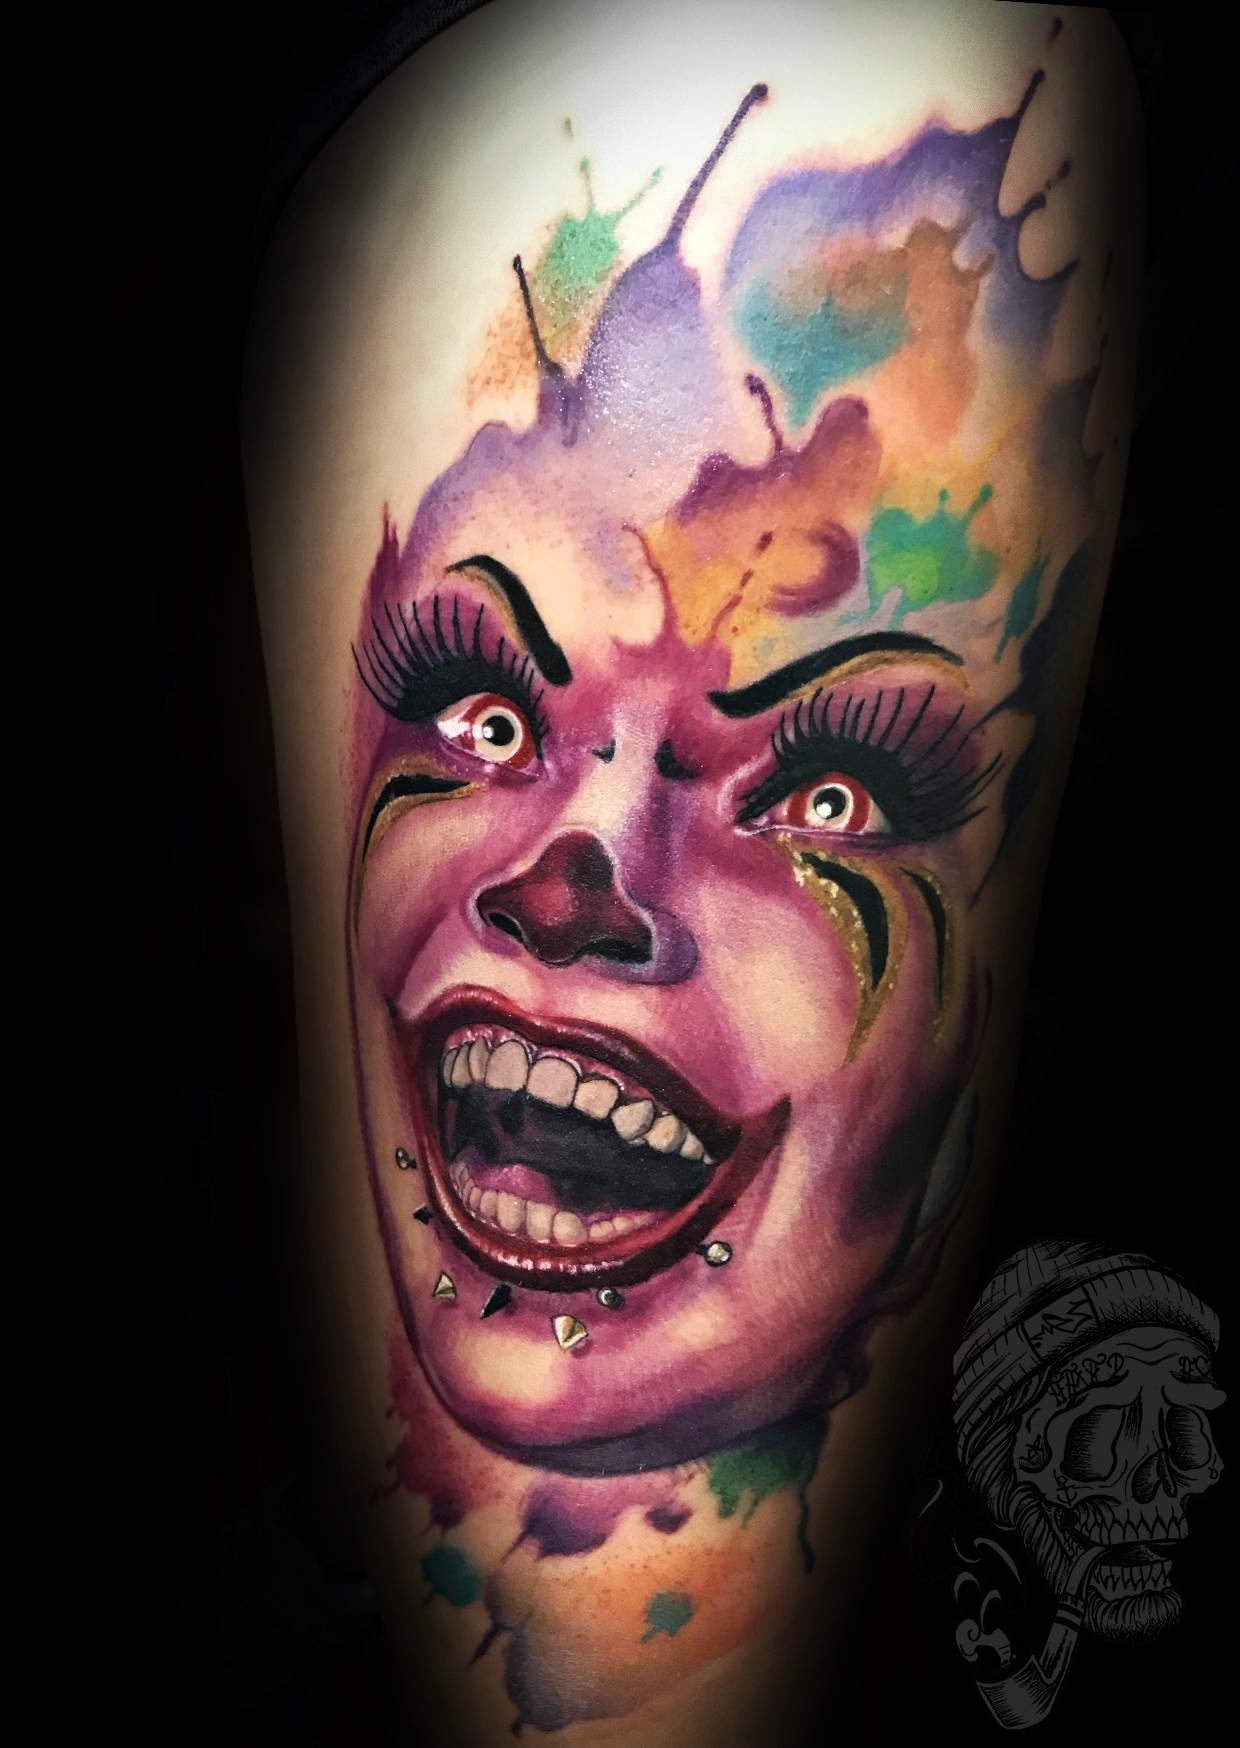 Tattoo Alicante - payasa pintura oleo